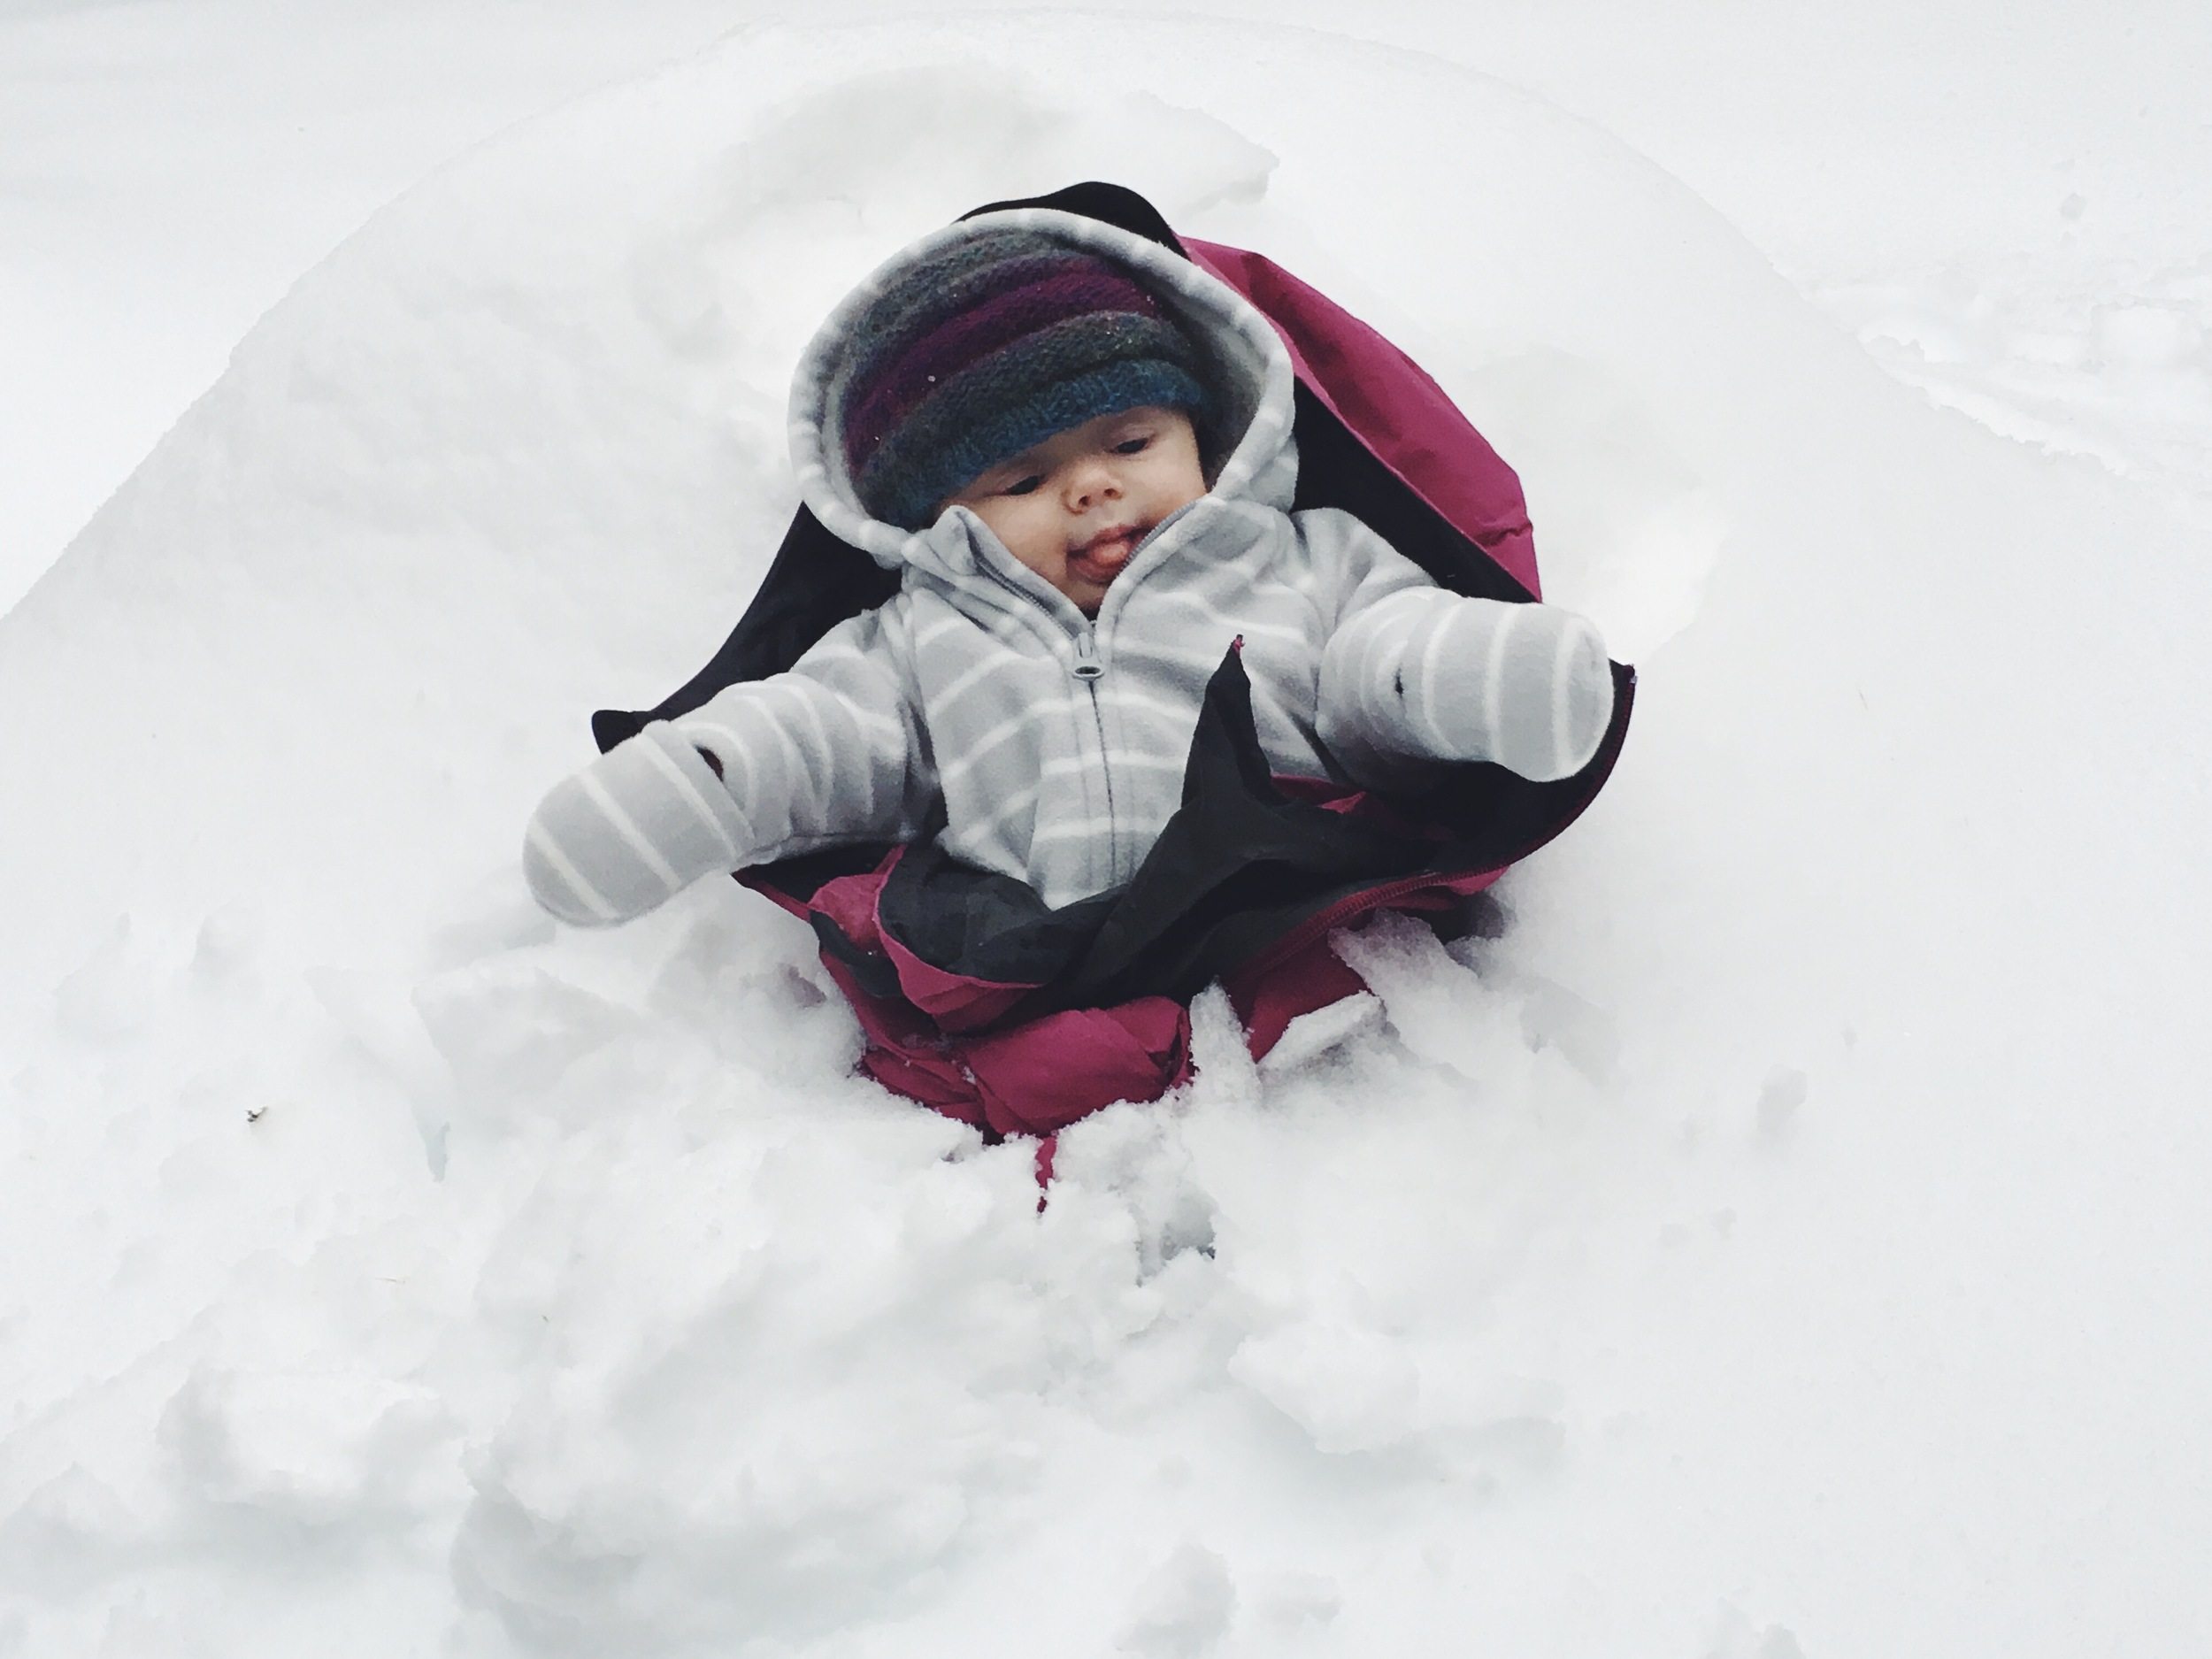 Playing in his first ever snow bank!